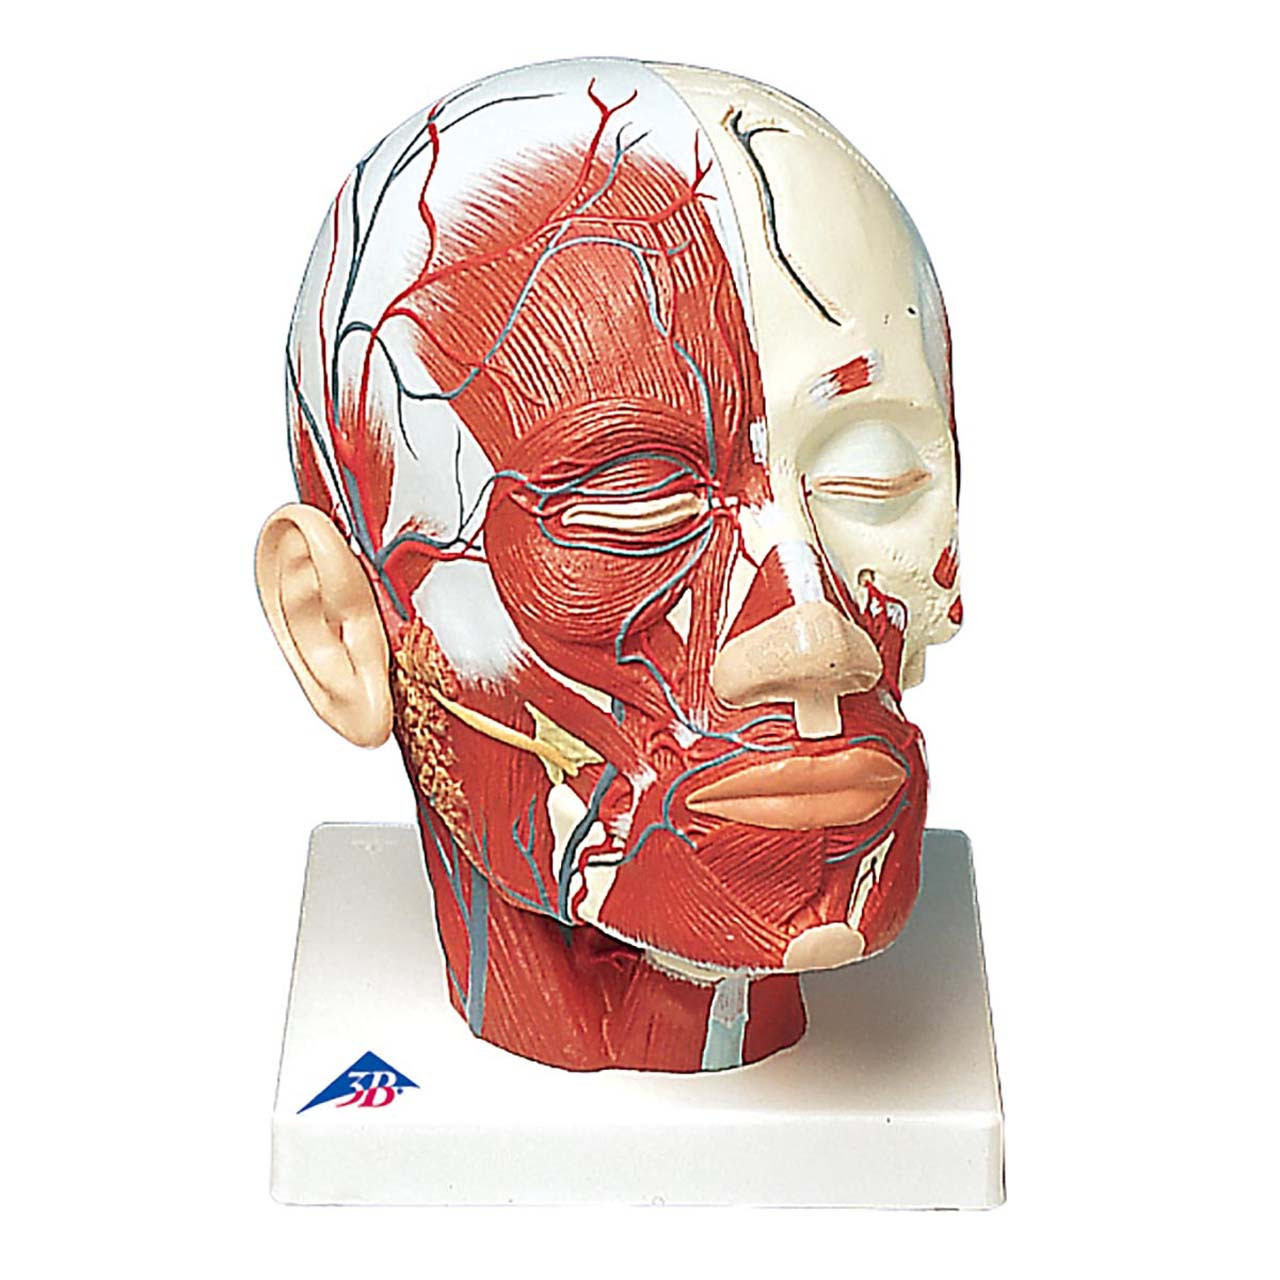 1001240 - Head Musculature additionally with Blood Vessels